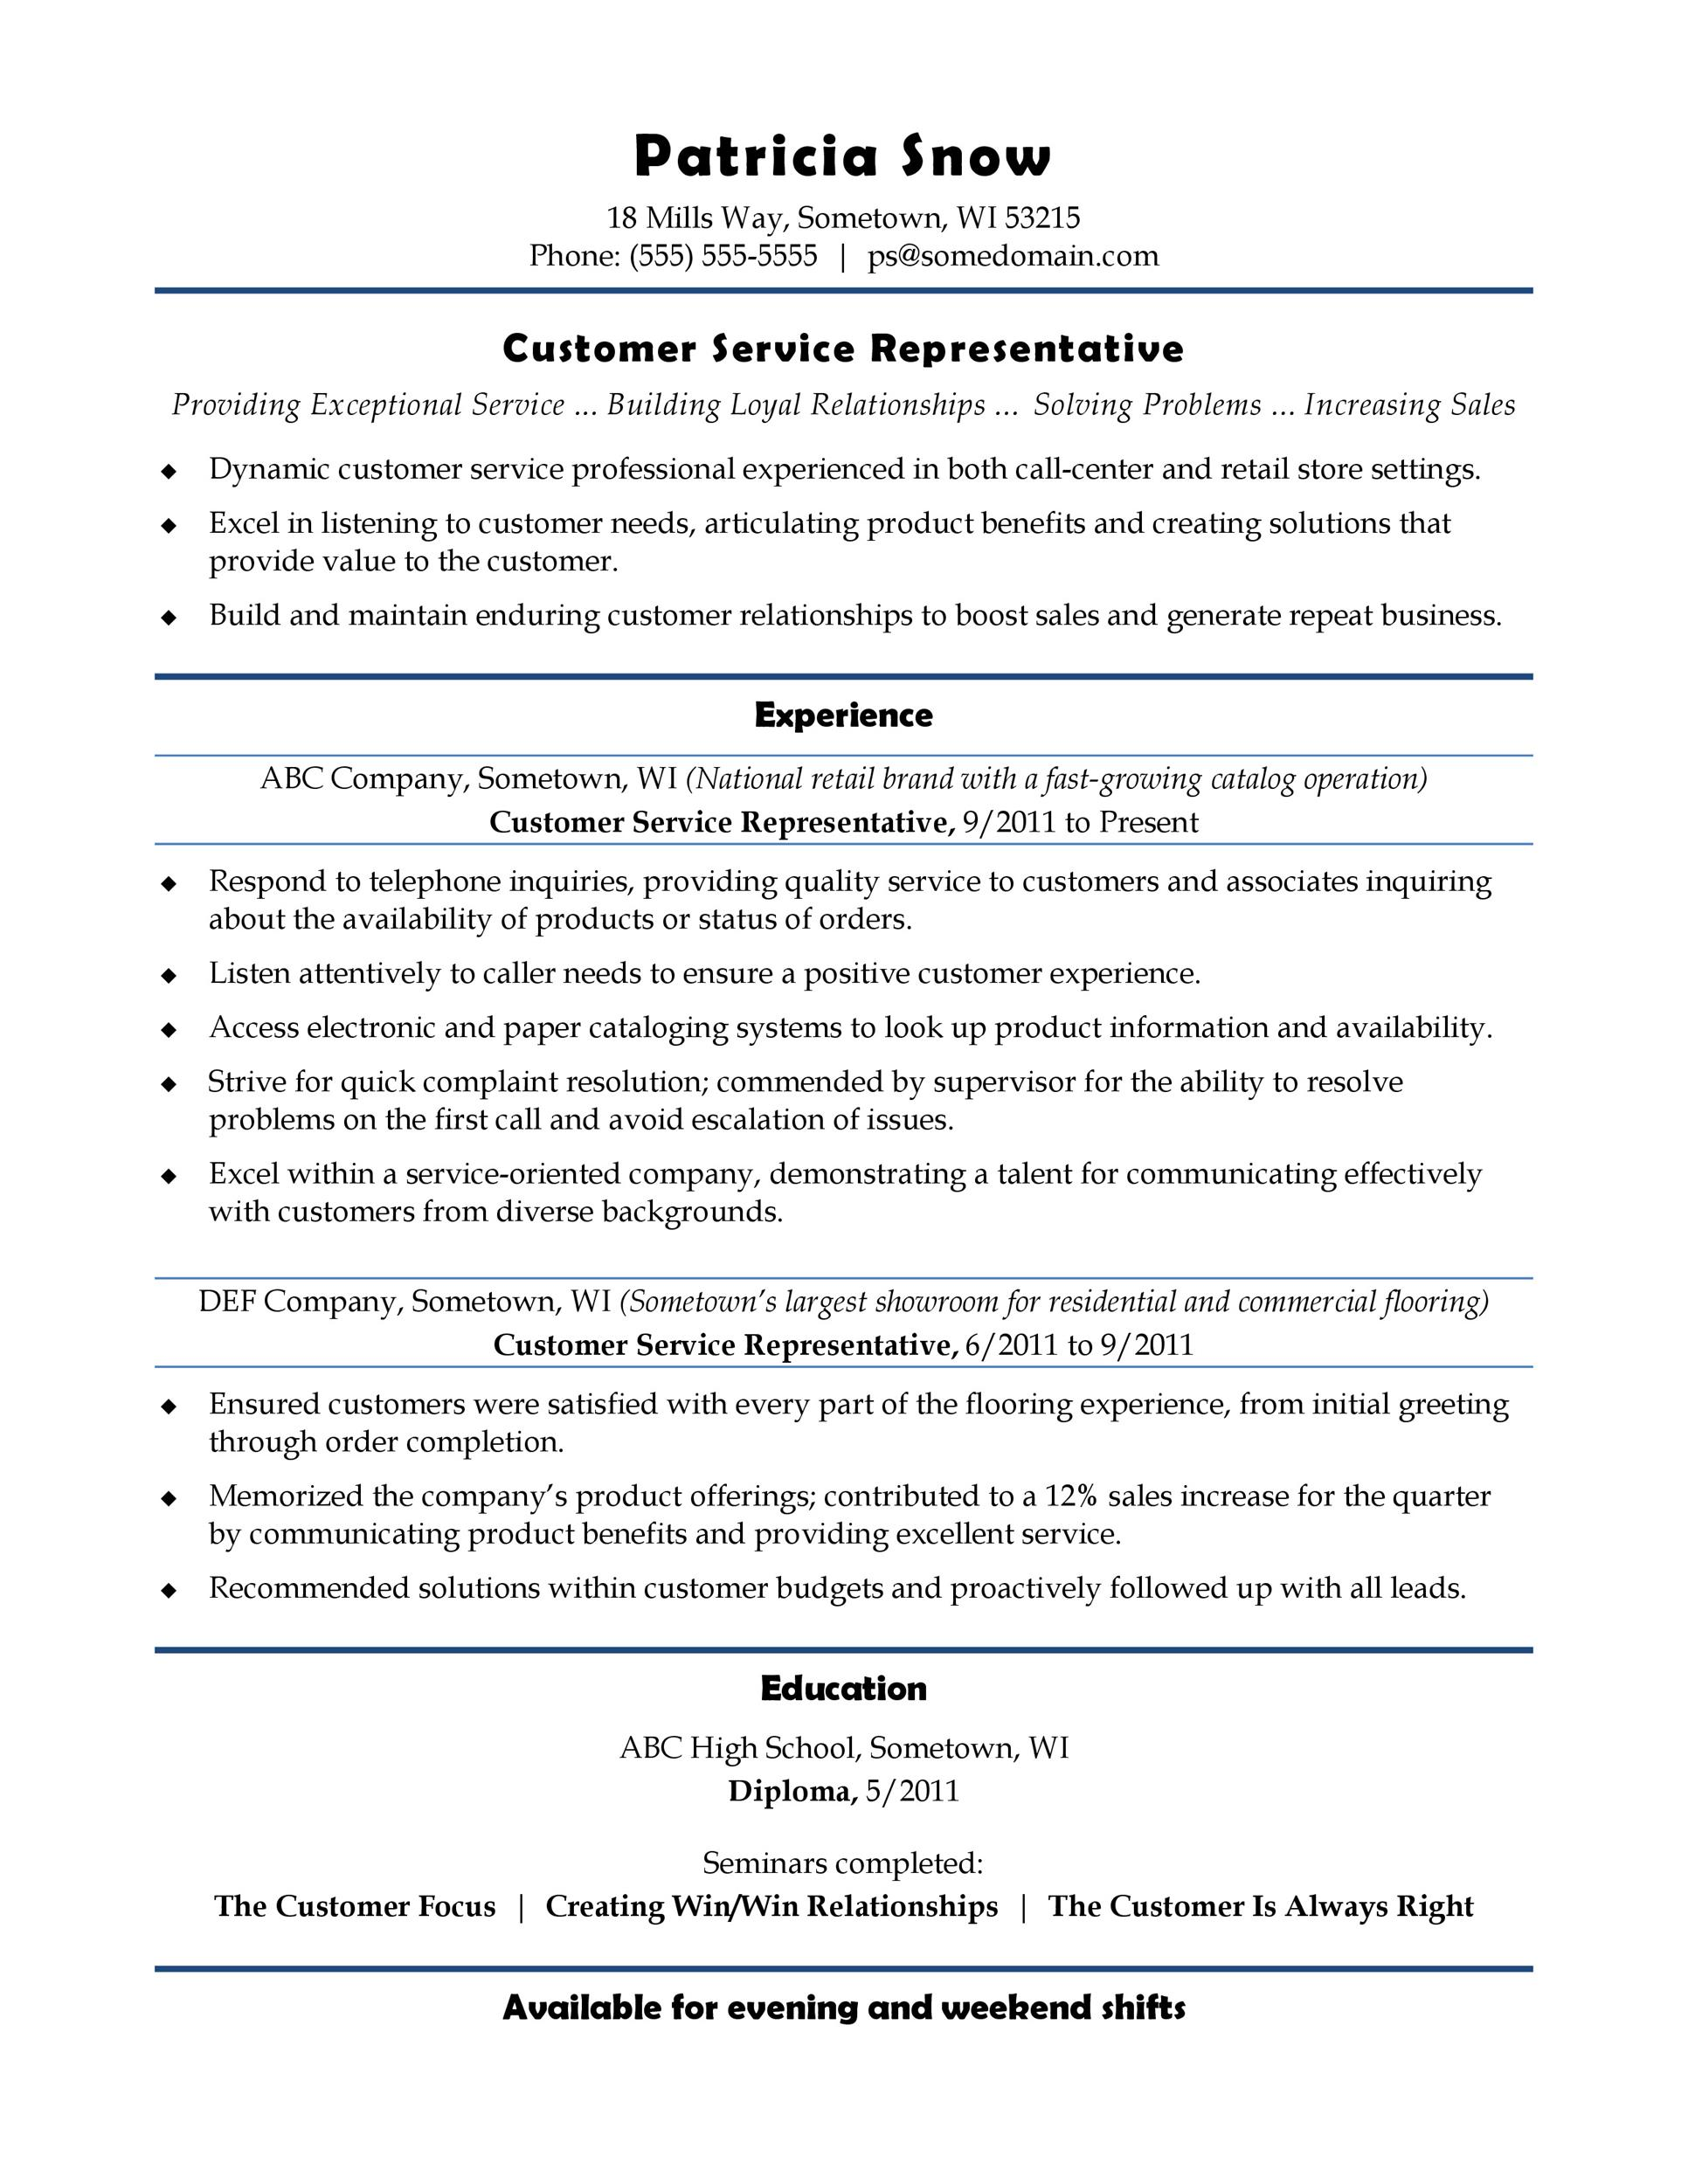 30 customer service resume examples template lab printable customer service resume template 02 thecheapjerseys Image collections